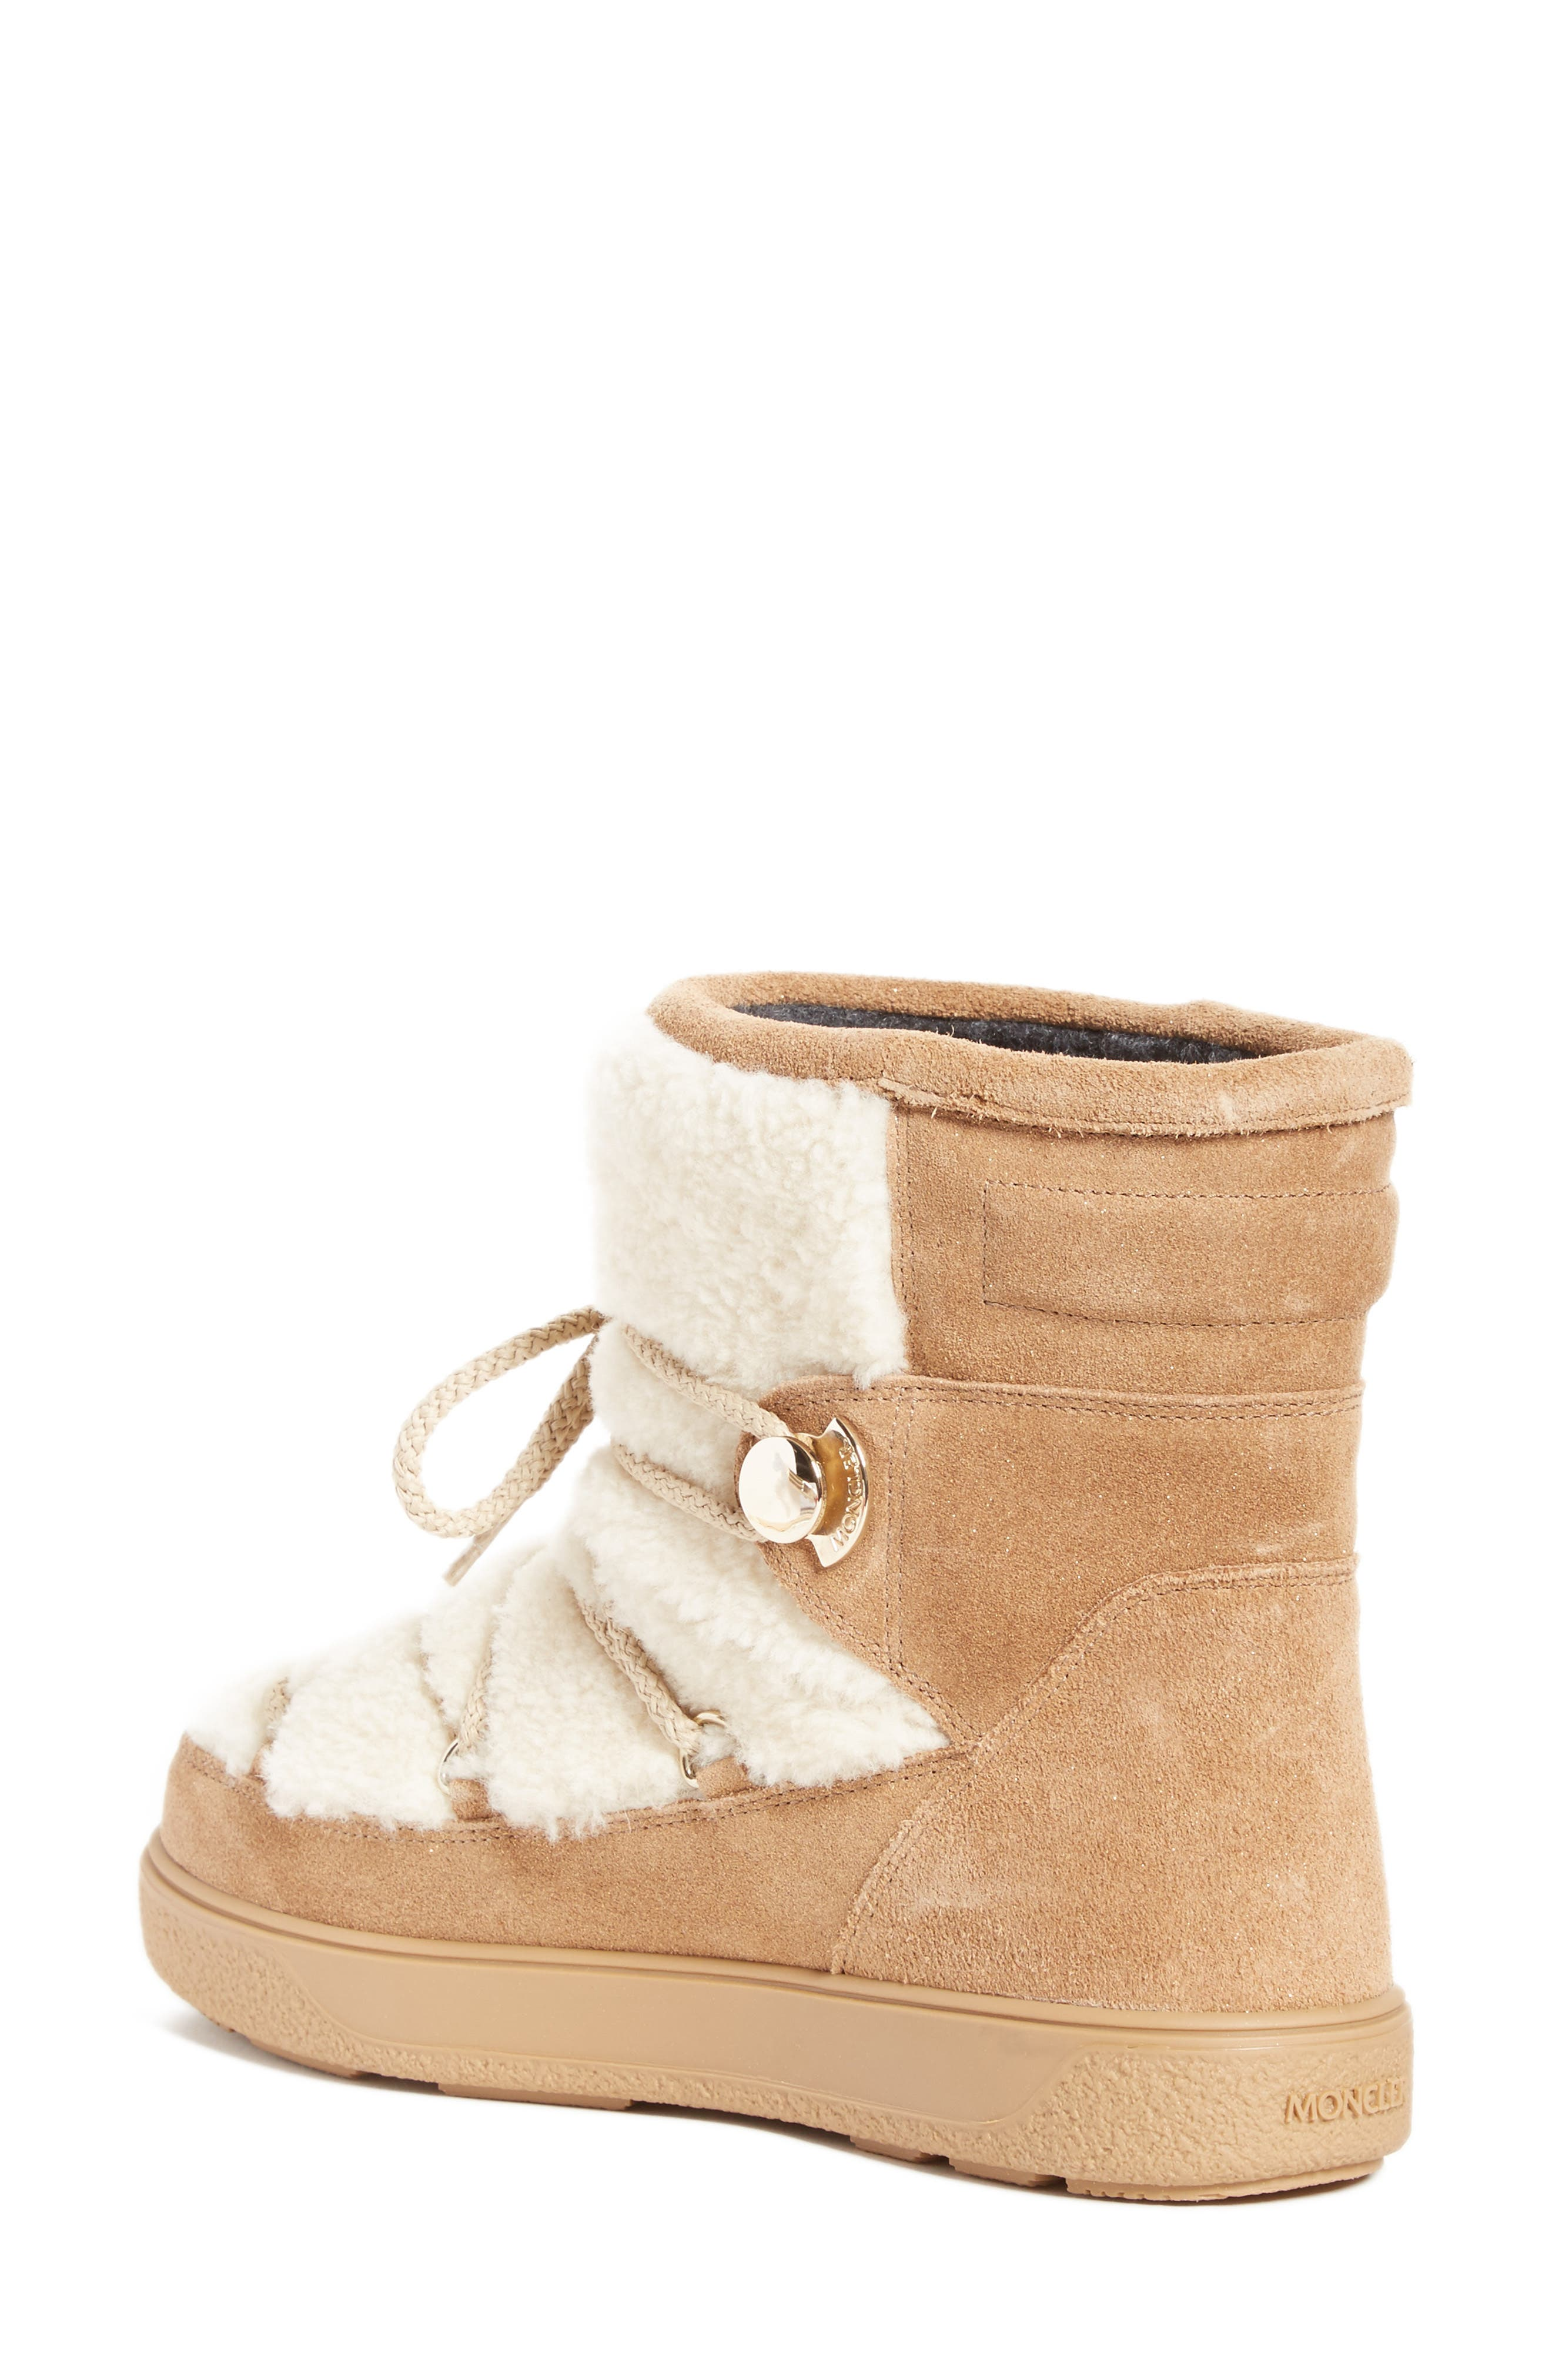 New Fanny Stivale Genuine Shearling Short Moon Boots,                             Alternate thumbnail 2, color,